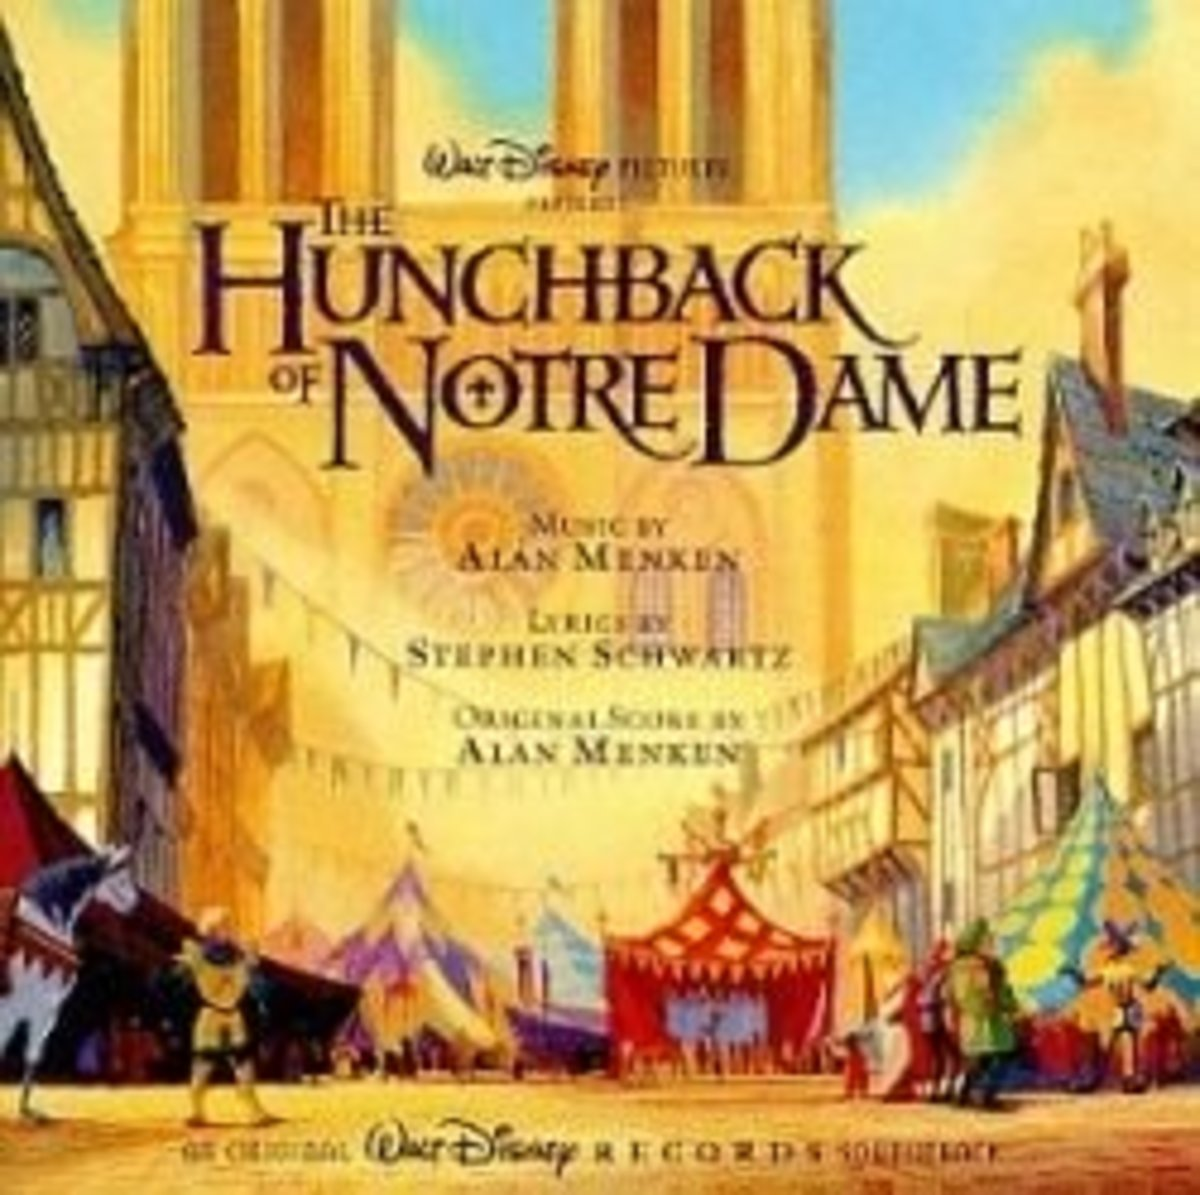 Hunchback of Notre Dame Soundtrack